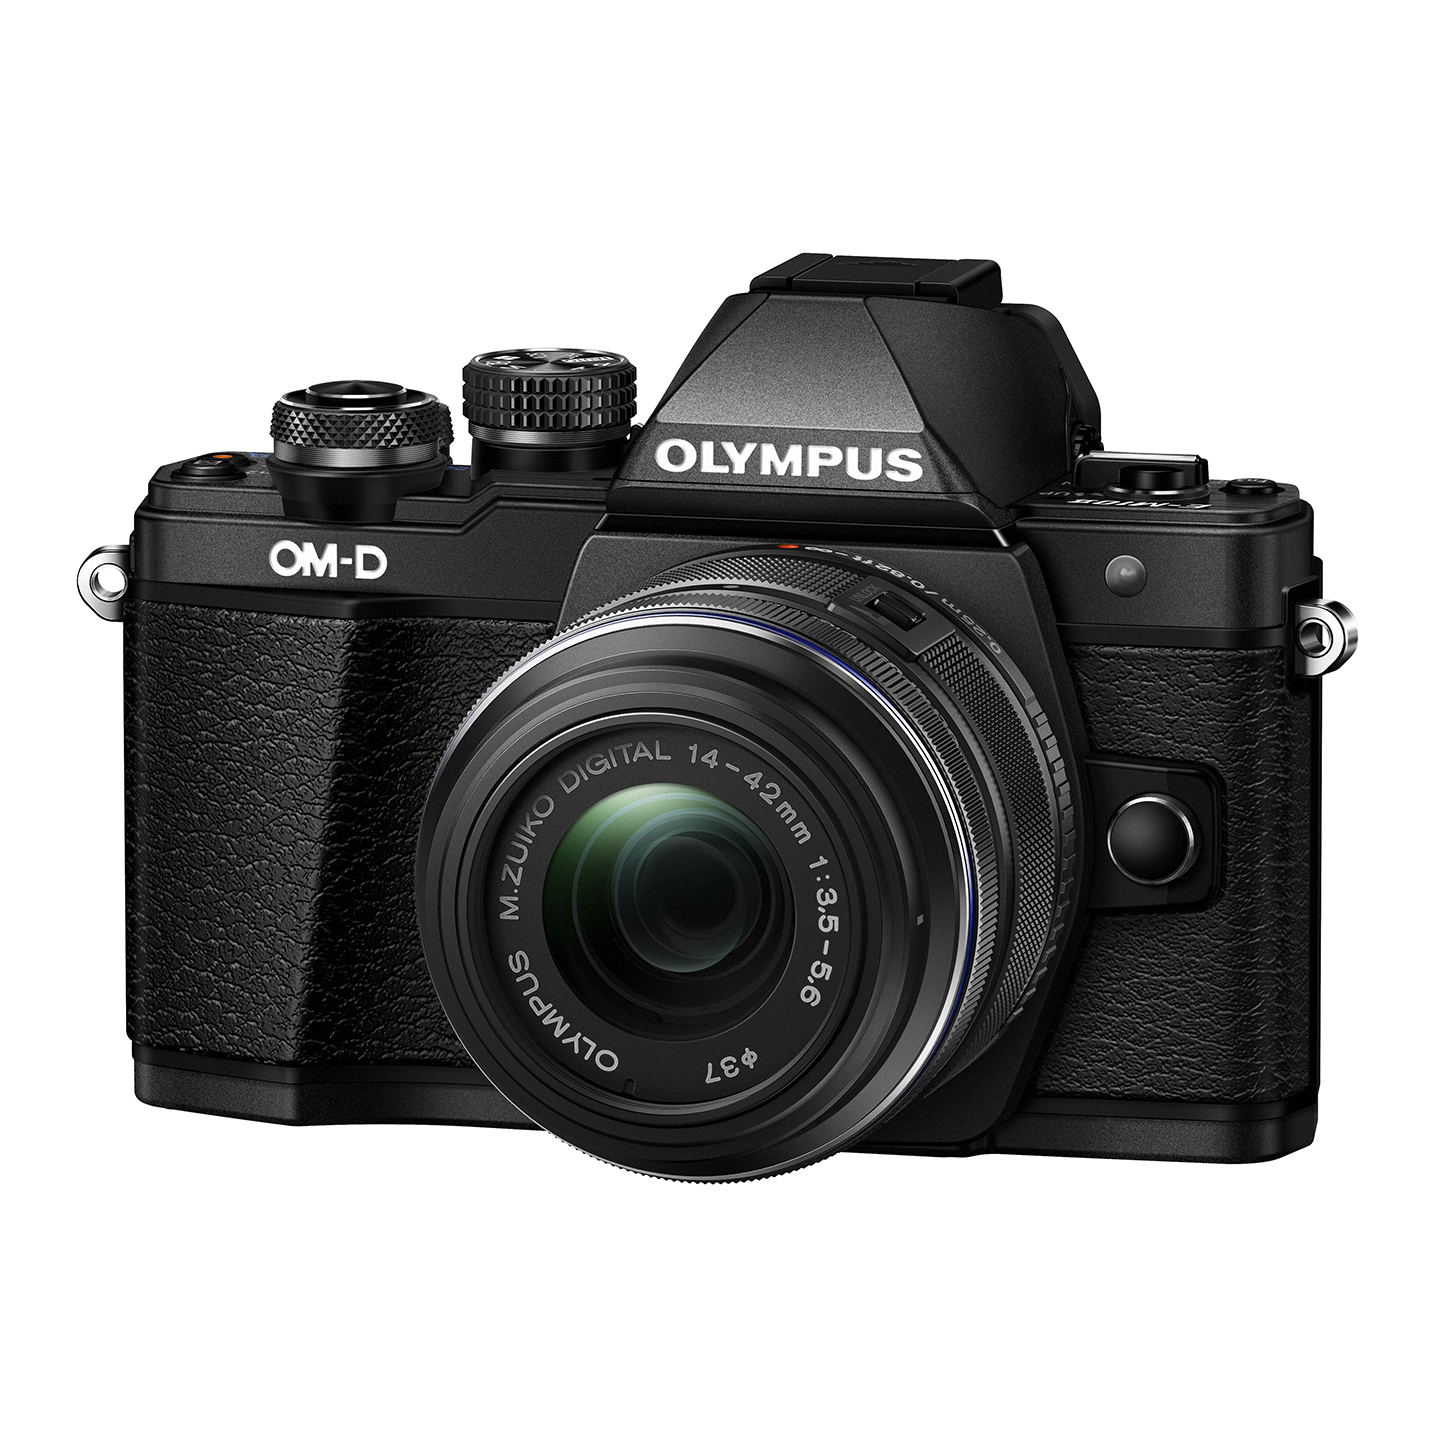 68c64b4733f5 7 Special Offer(s) Available  Save  300 on an Olympus ...